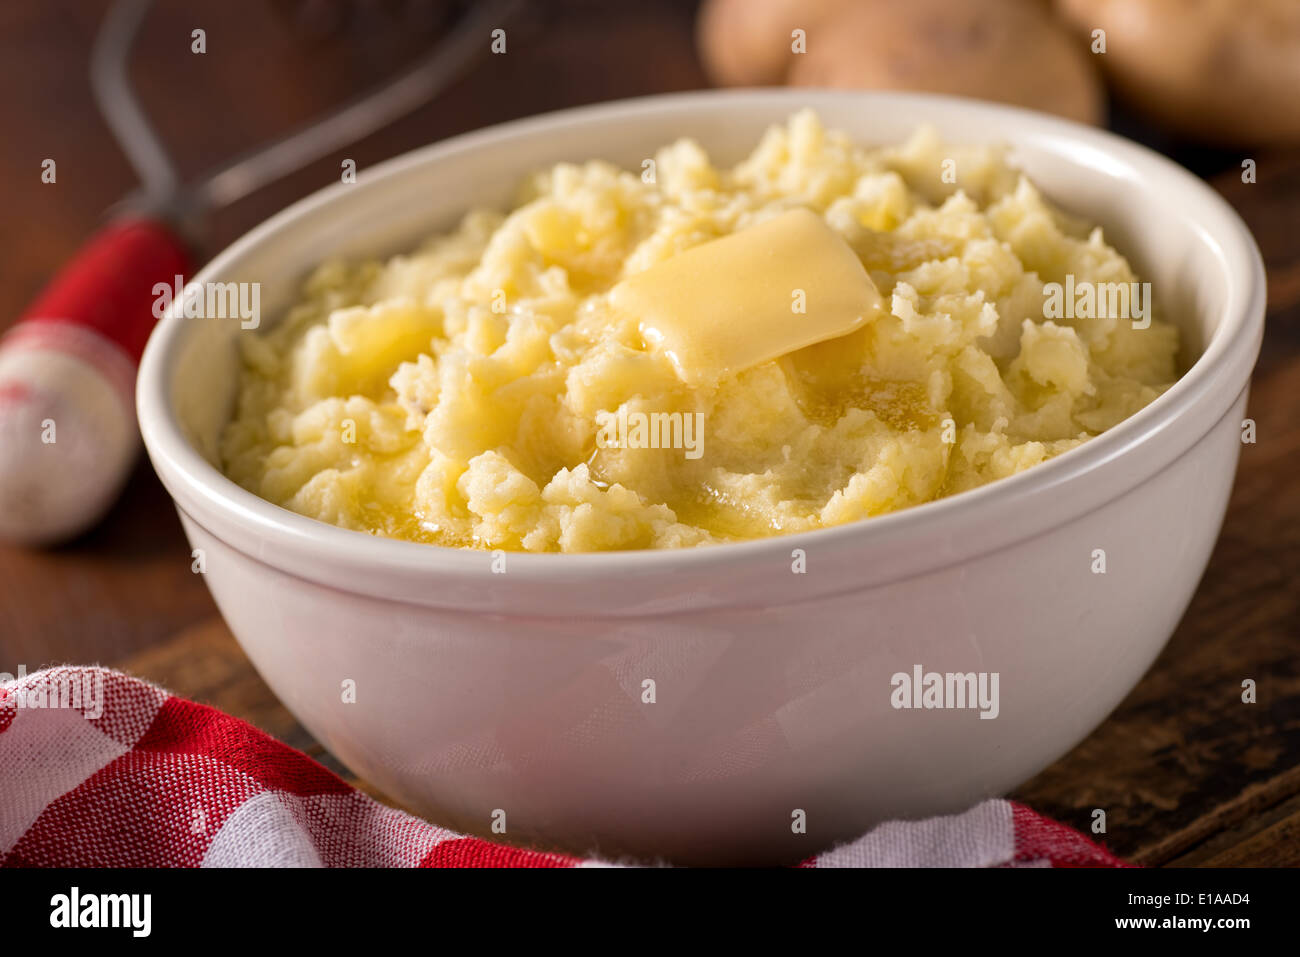 A bowl of creamy delicious mashed potatoes with melted butter. Stock Photo